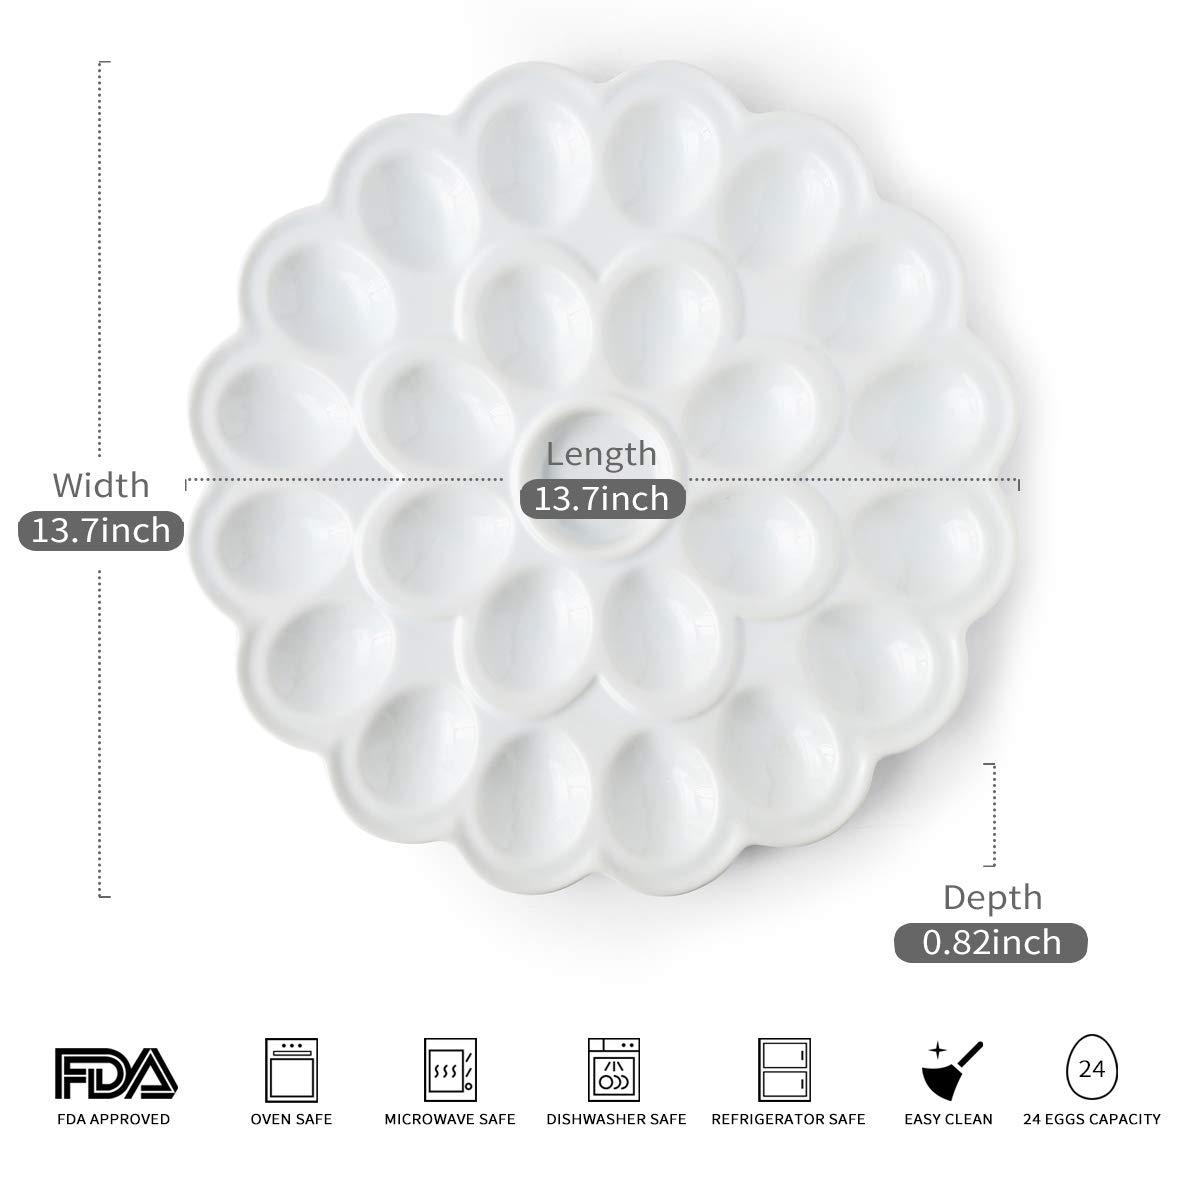 13.5-inch Porcelain Deviled Egg Tray/Dish White Ceramic Egg Platter with 25-Compartment by LAUCHUH (Image #2)